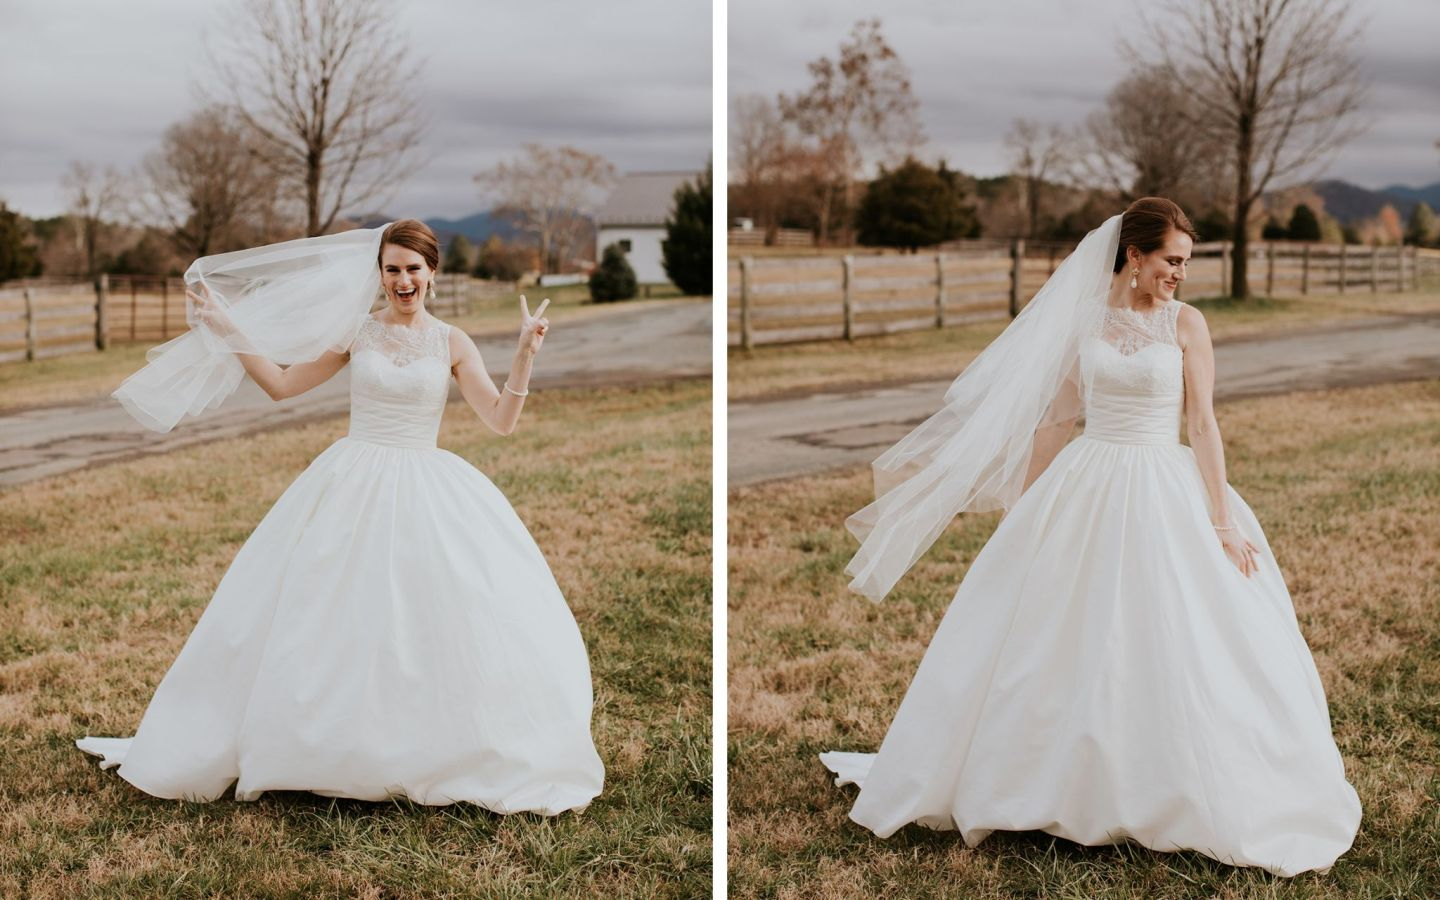 augusta jones paz dress - winter wedding ballgown dress